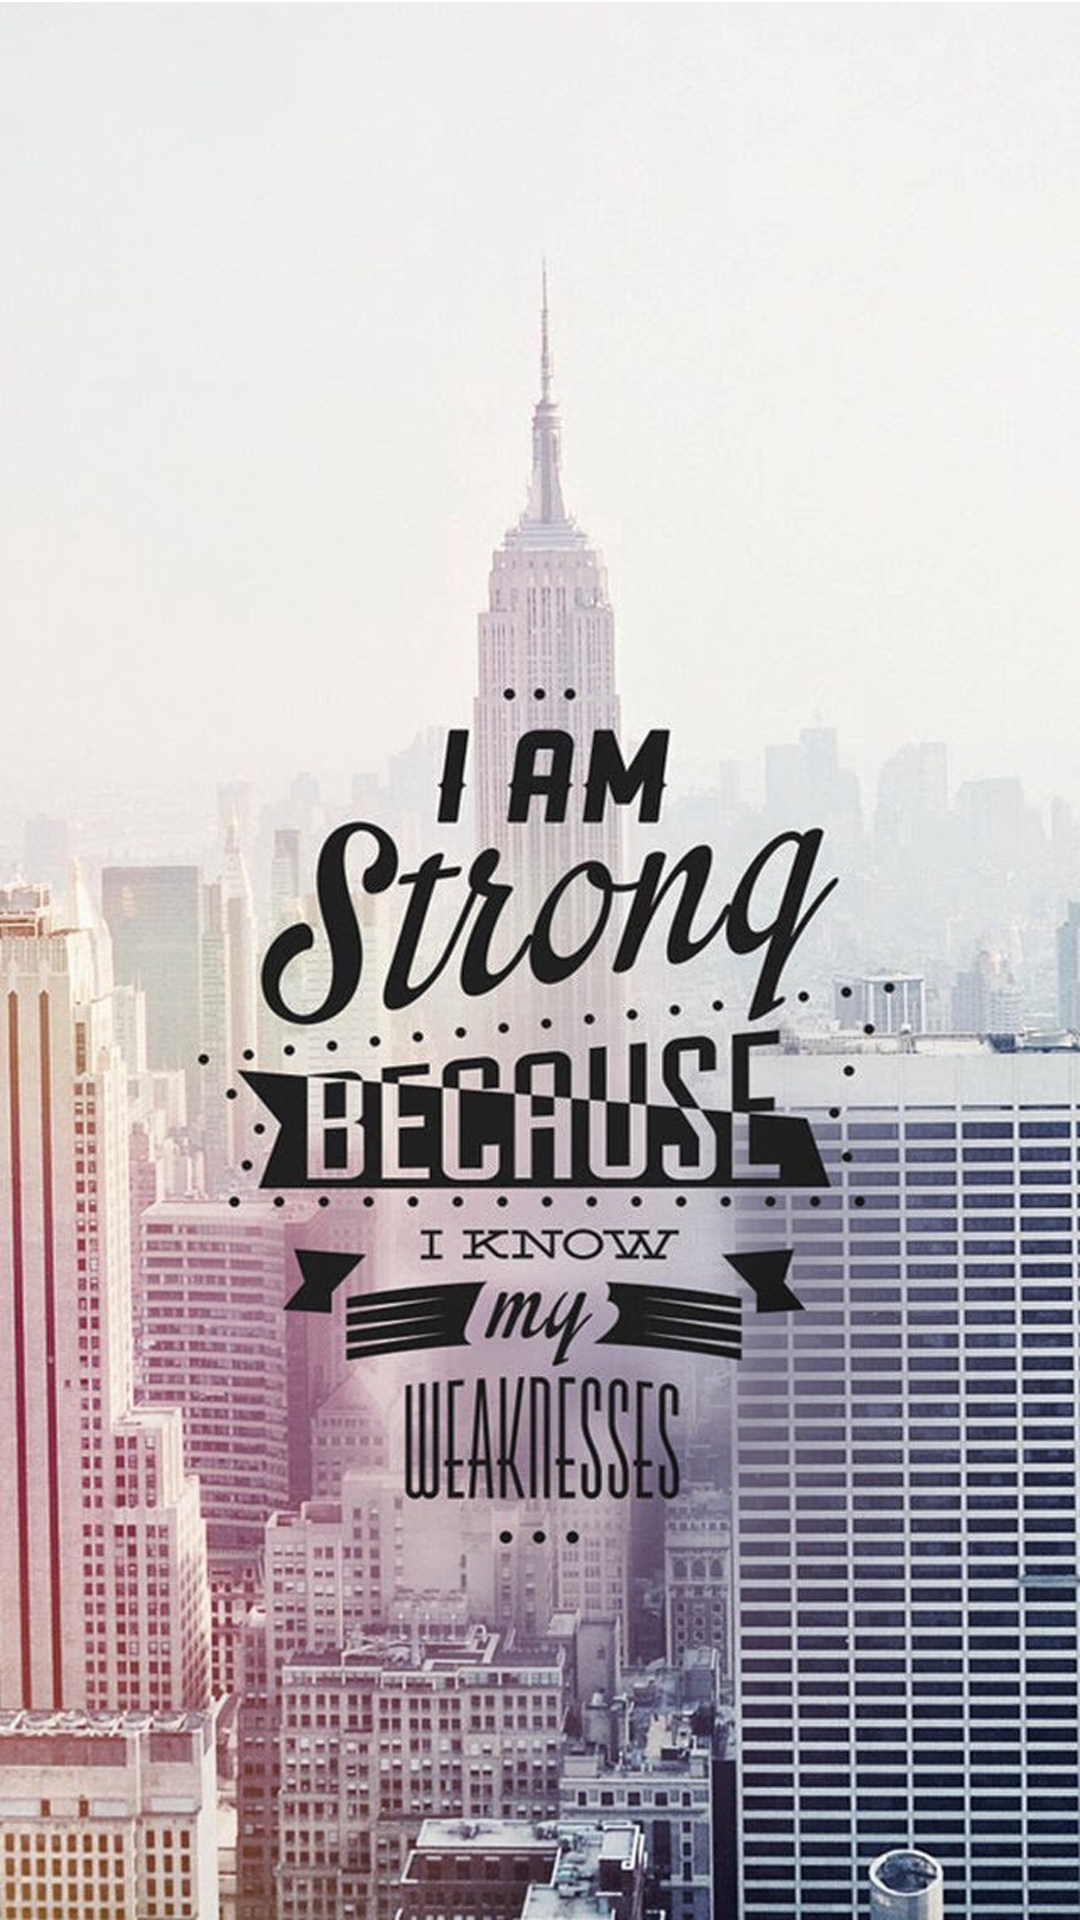 Amusing I am strong quote Same urbanization